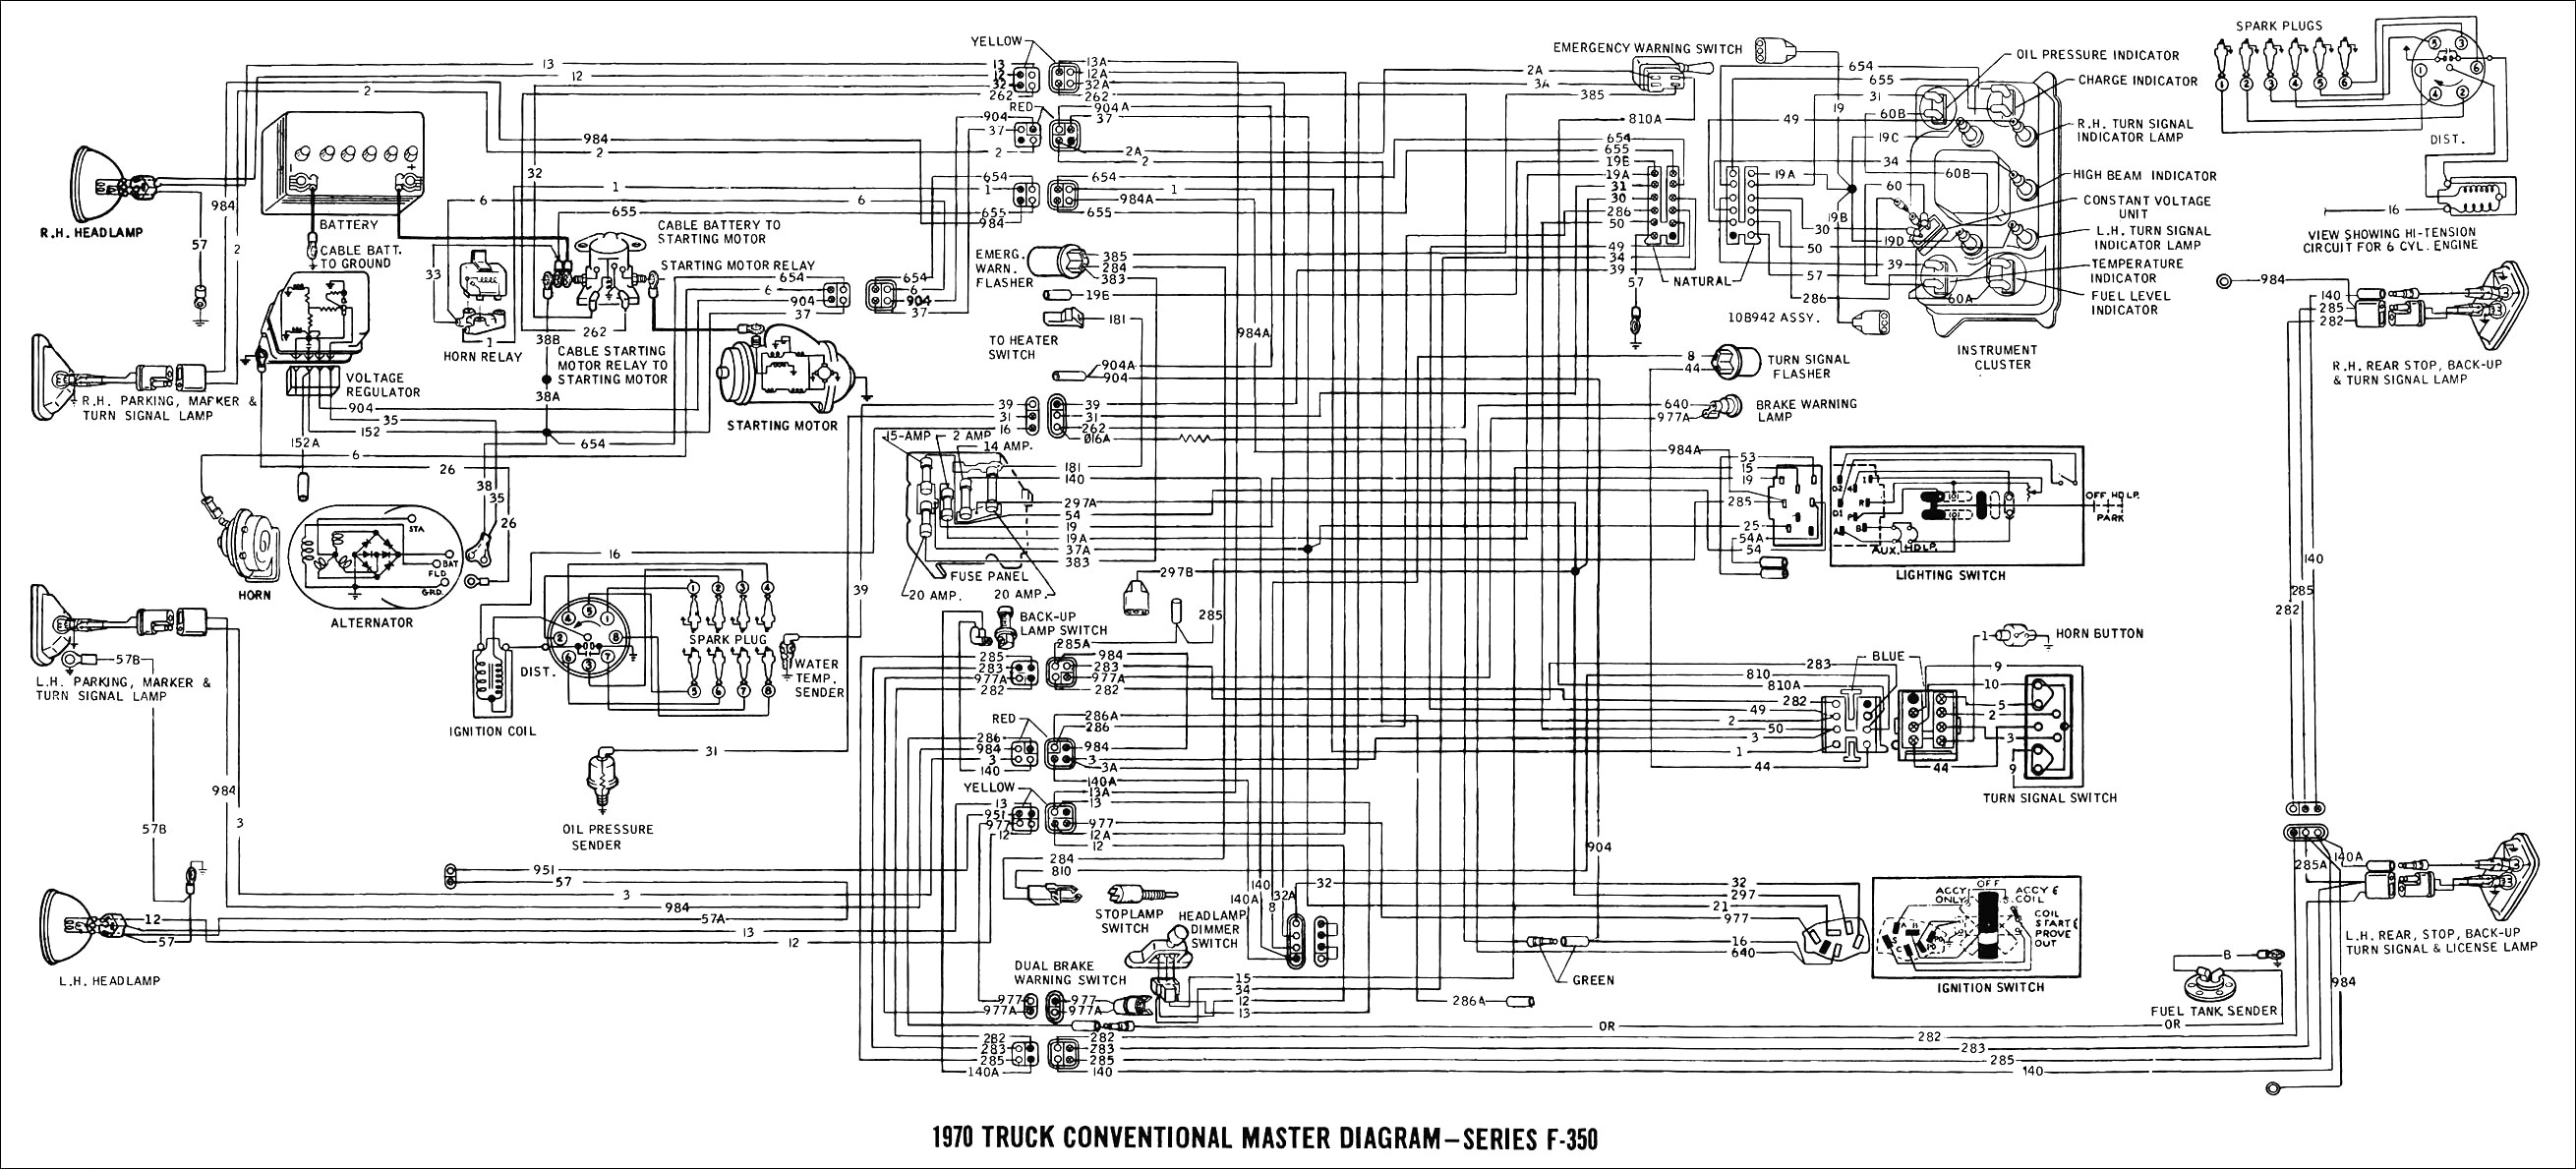 97 Ford Ranger Engine Diagram Wiring Library 2002 2 3l My Rh Detoxicrecenze Com